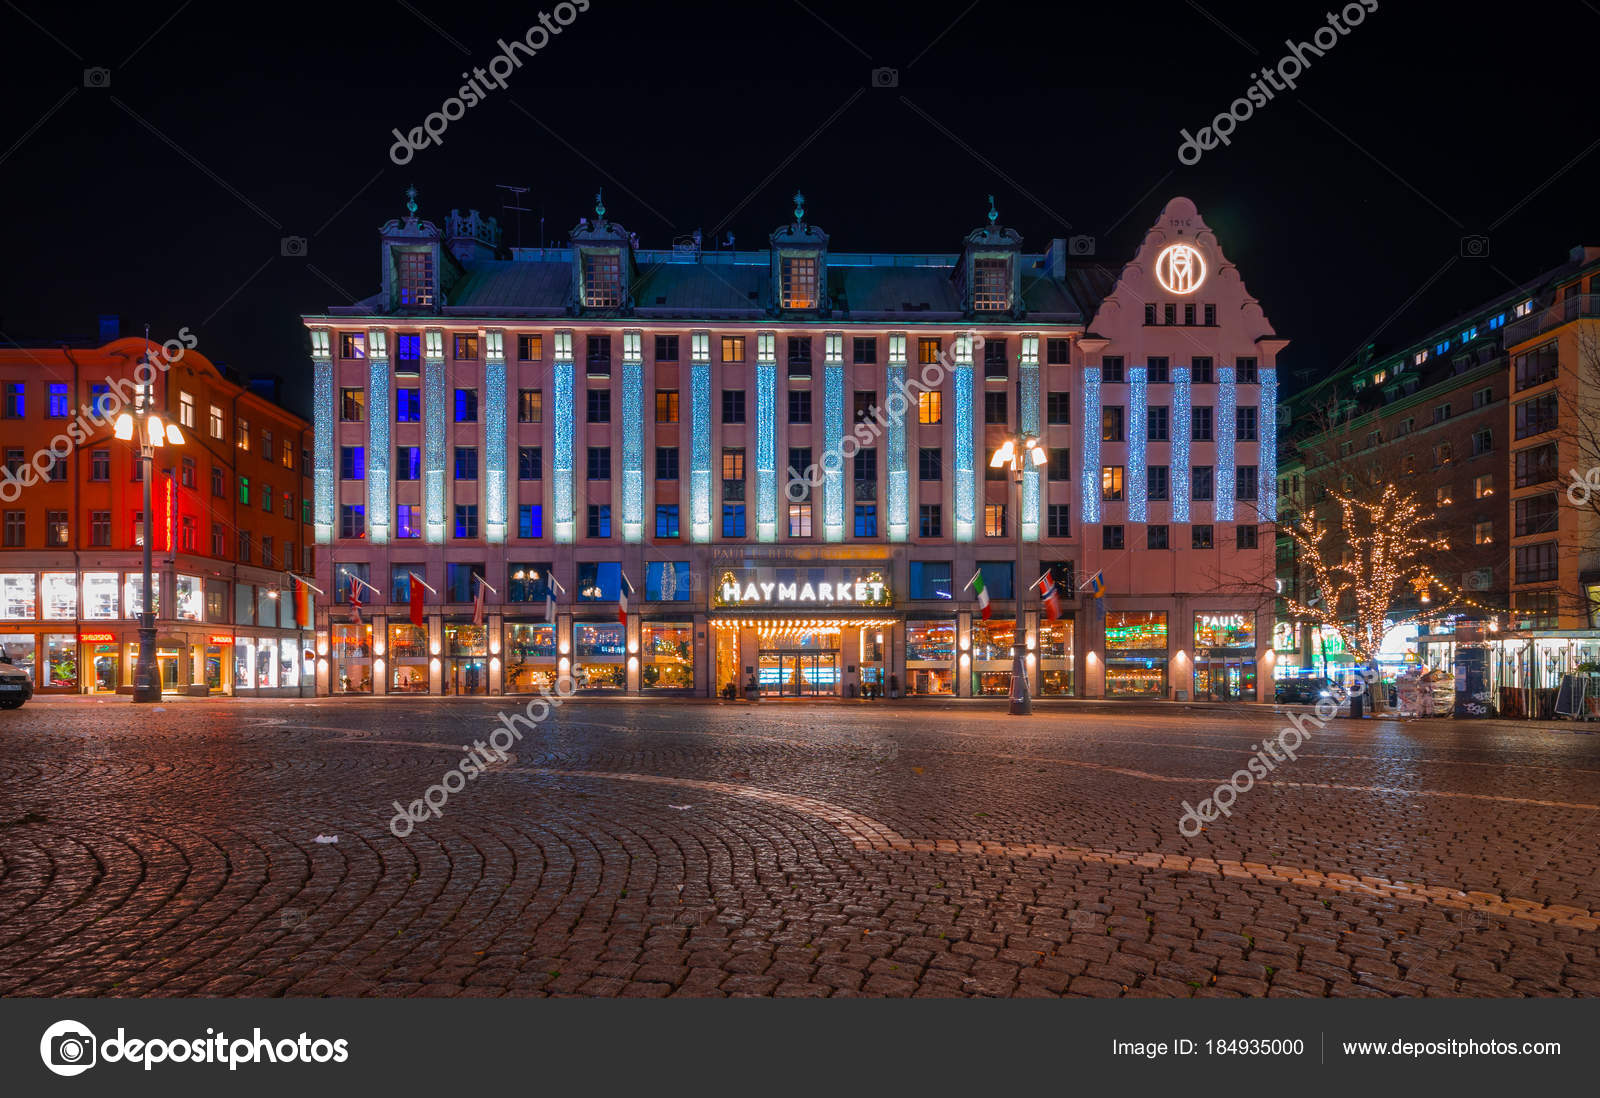 December 2017 central stockholm sweden hotorget with its outdoor hotorget with its outdoor market haymarket decorated with led lights for christmas no people evening photo by alekseykondratyevail aloadofball Image collections